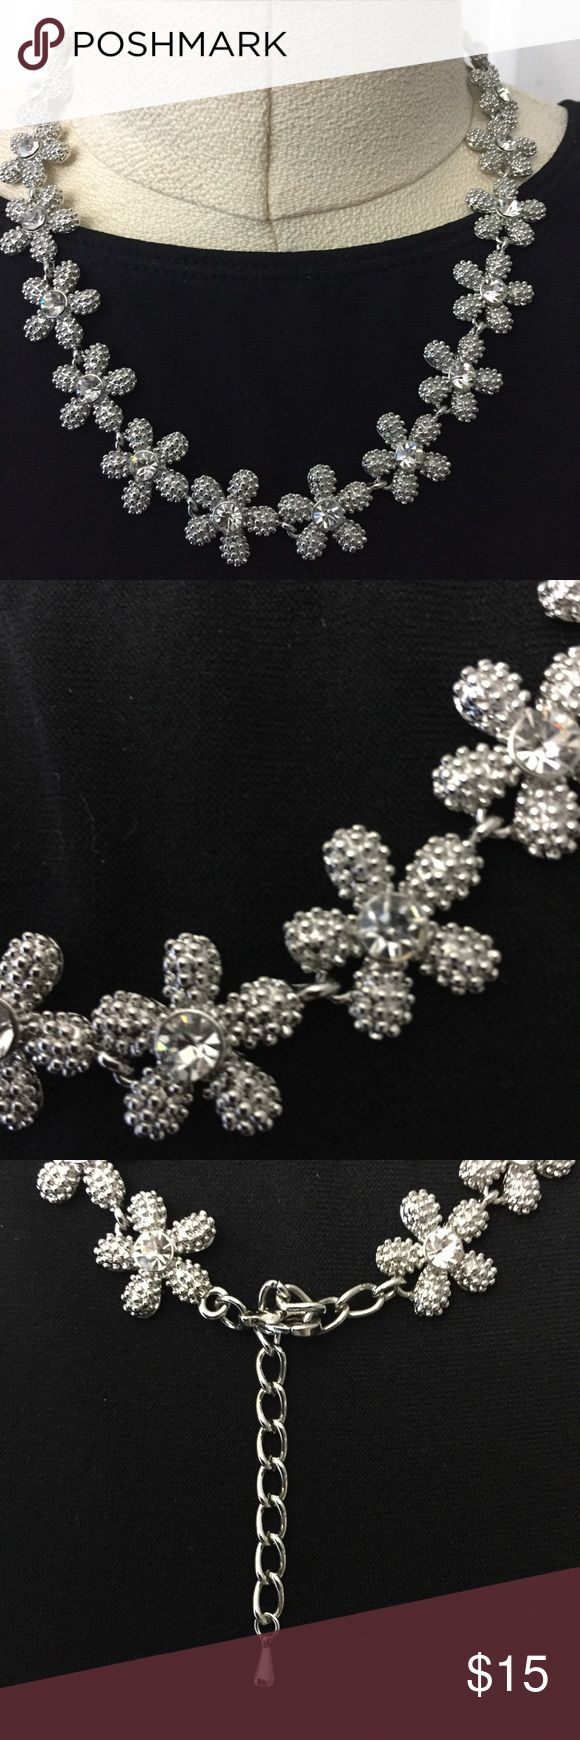 """Silvertone and Rhinestone Chained  Flower Necklace This necklace is SO PRETTY! Photos don't do it justice! Wear with any color. Adjusts from 8-9.5"""" length. Can be worn with a black cocktail dress, a yellow summer dress or denim ... and anywhere in between. Substantial weight ... great quality costume jewelry. New! unbranded Jewelry Necklaces"""